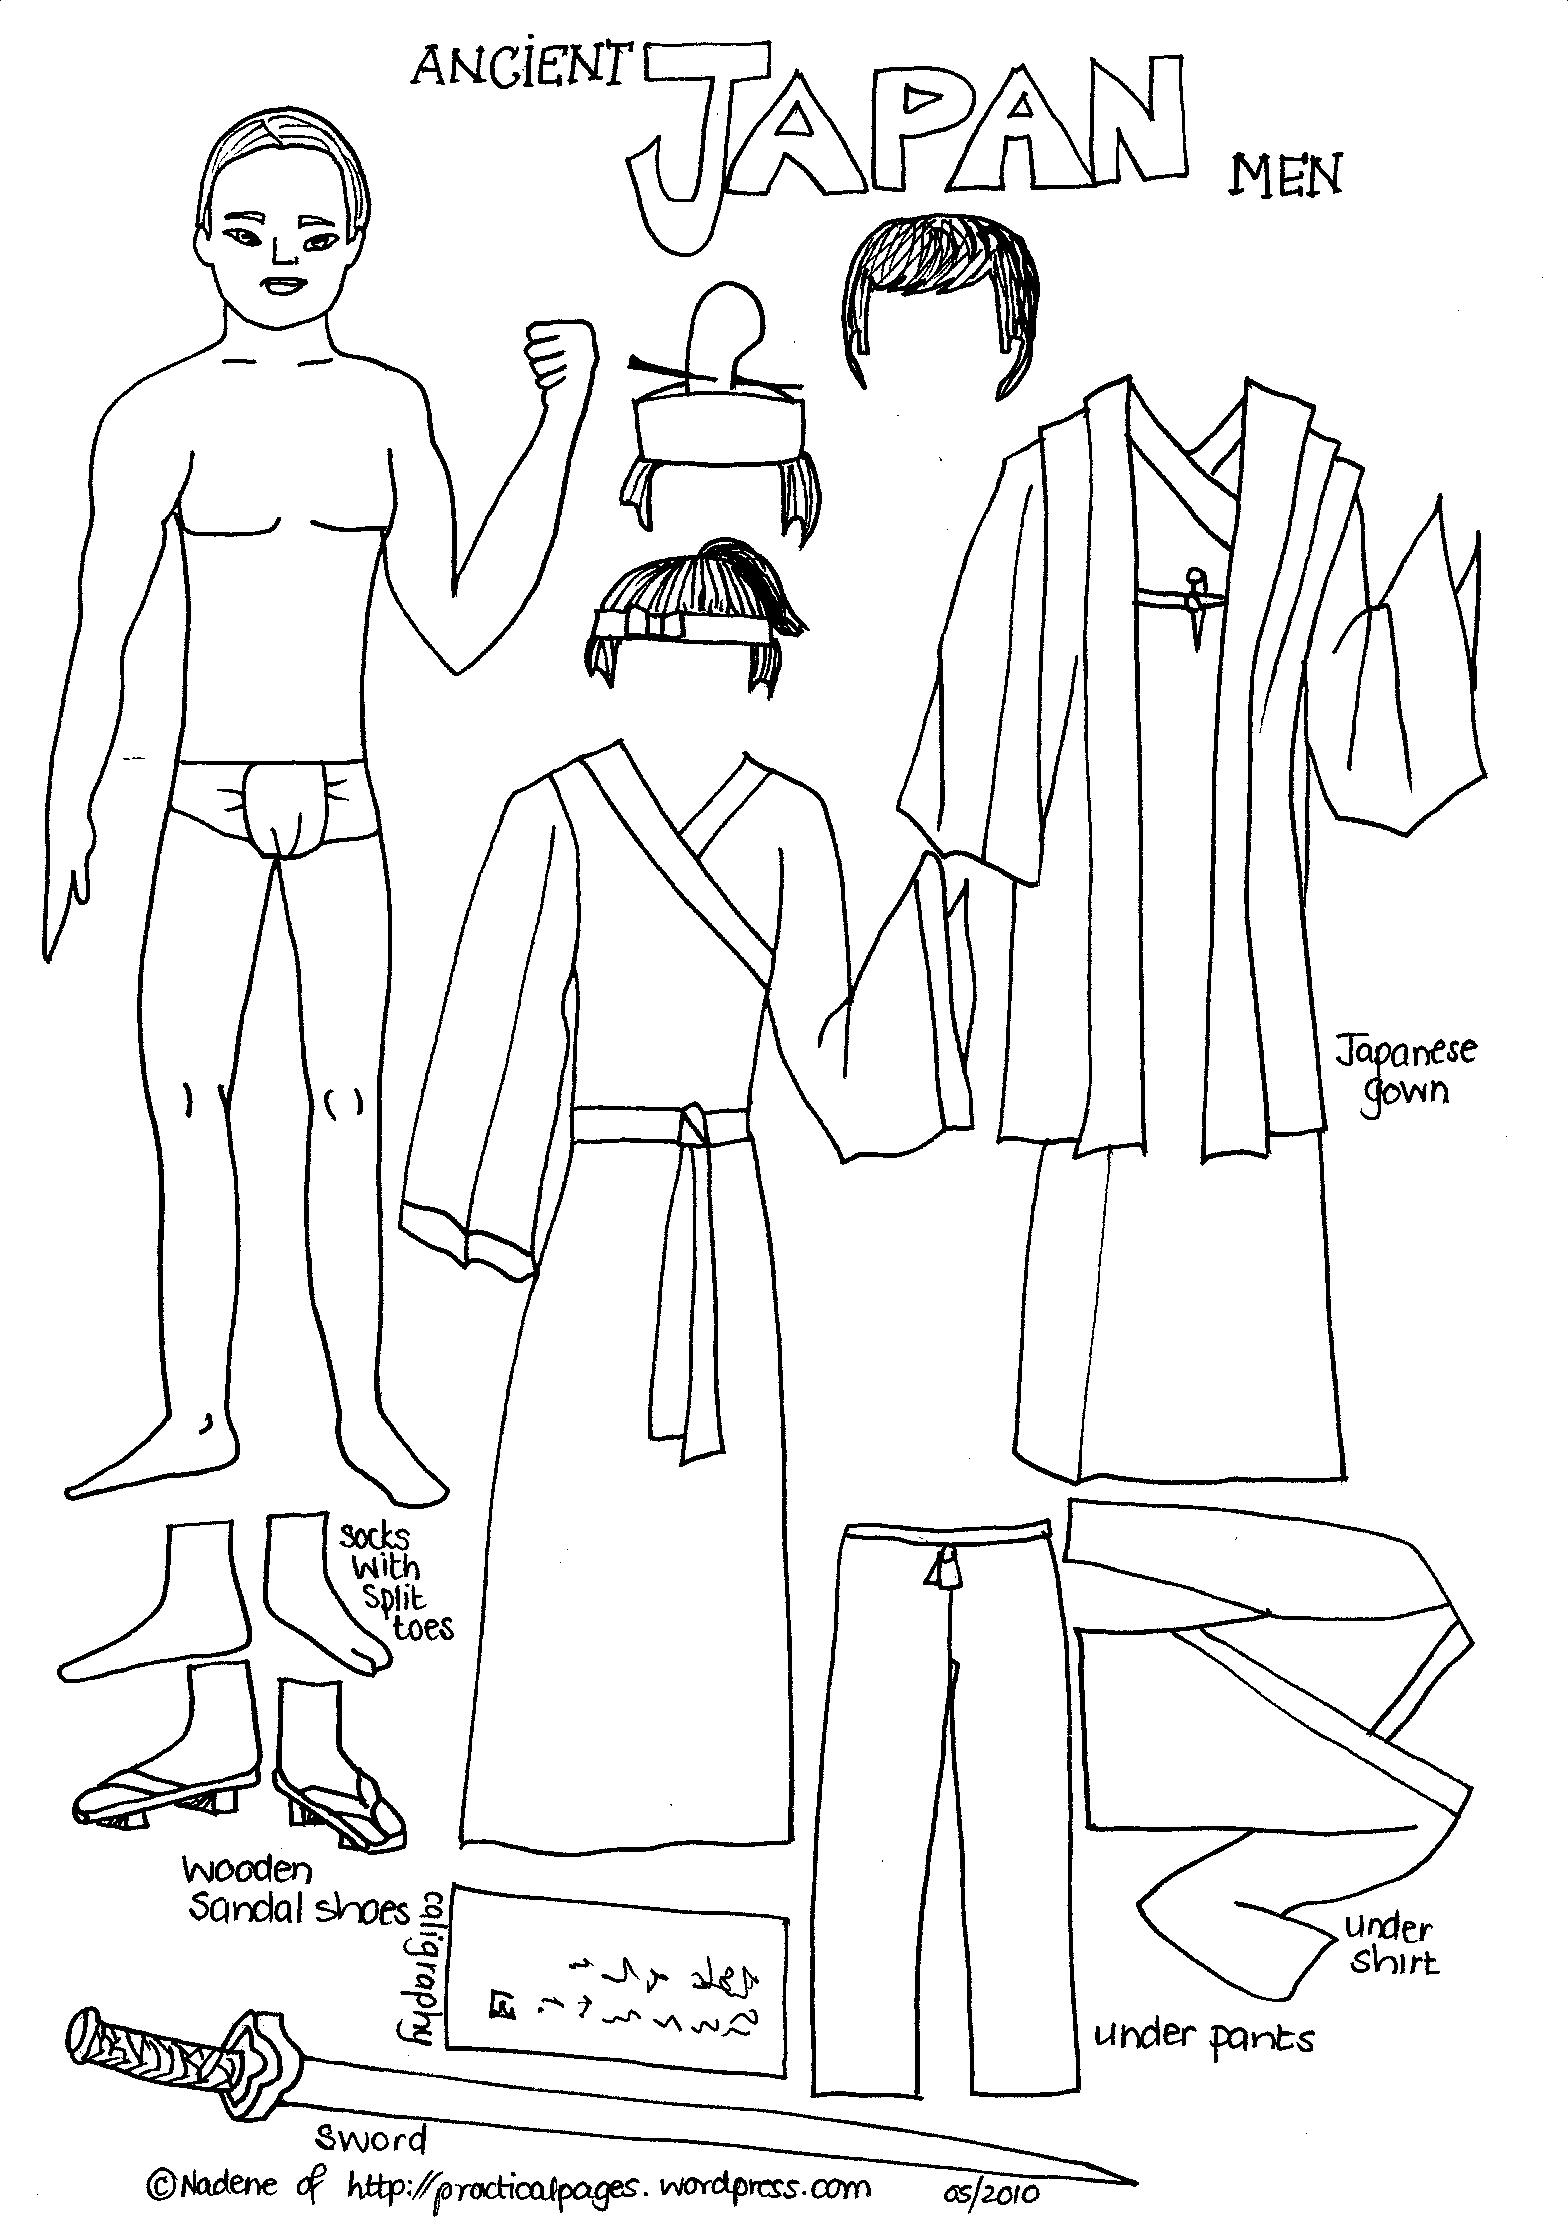 Ancient History Japan Men Paper Dolls Ancient Japan